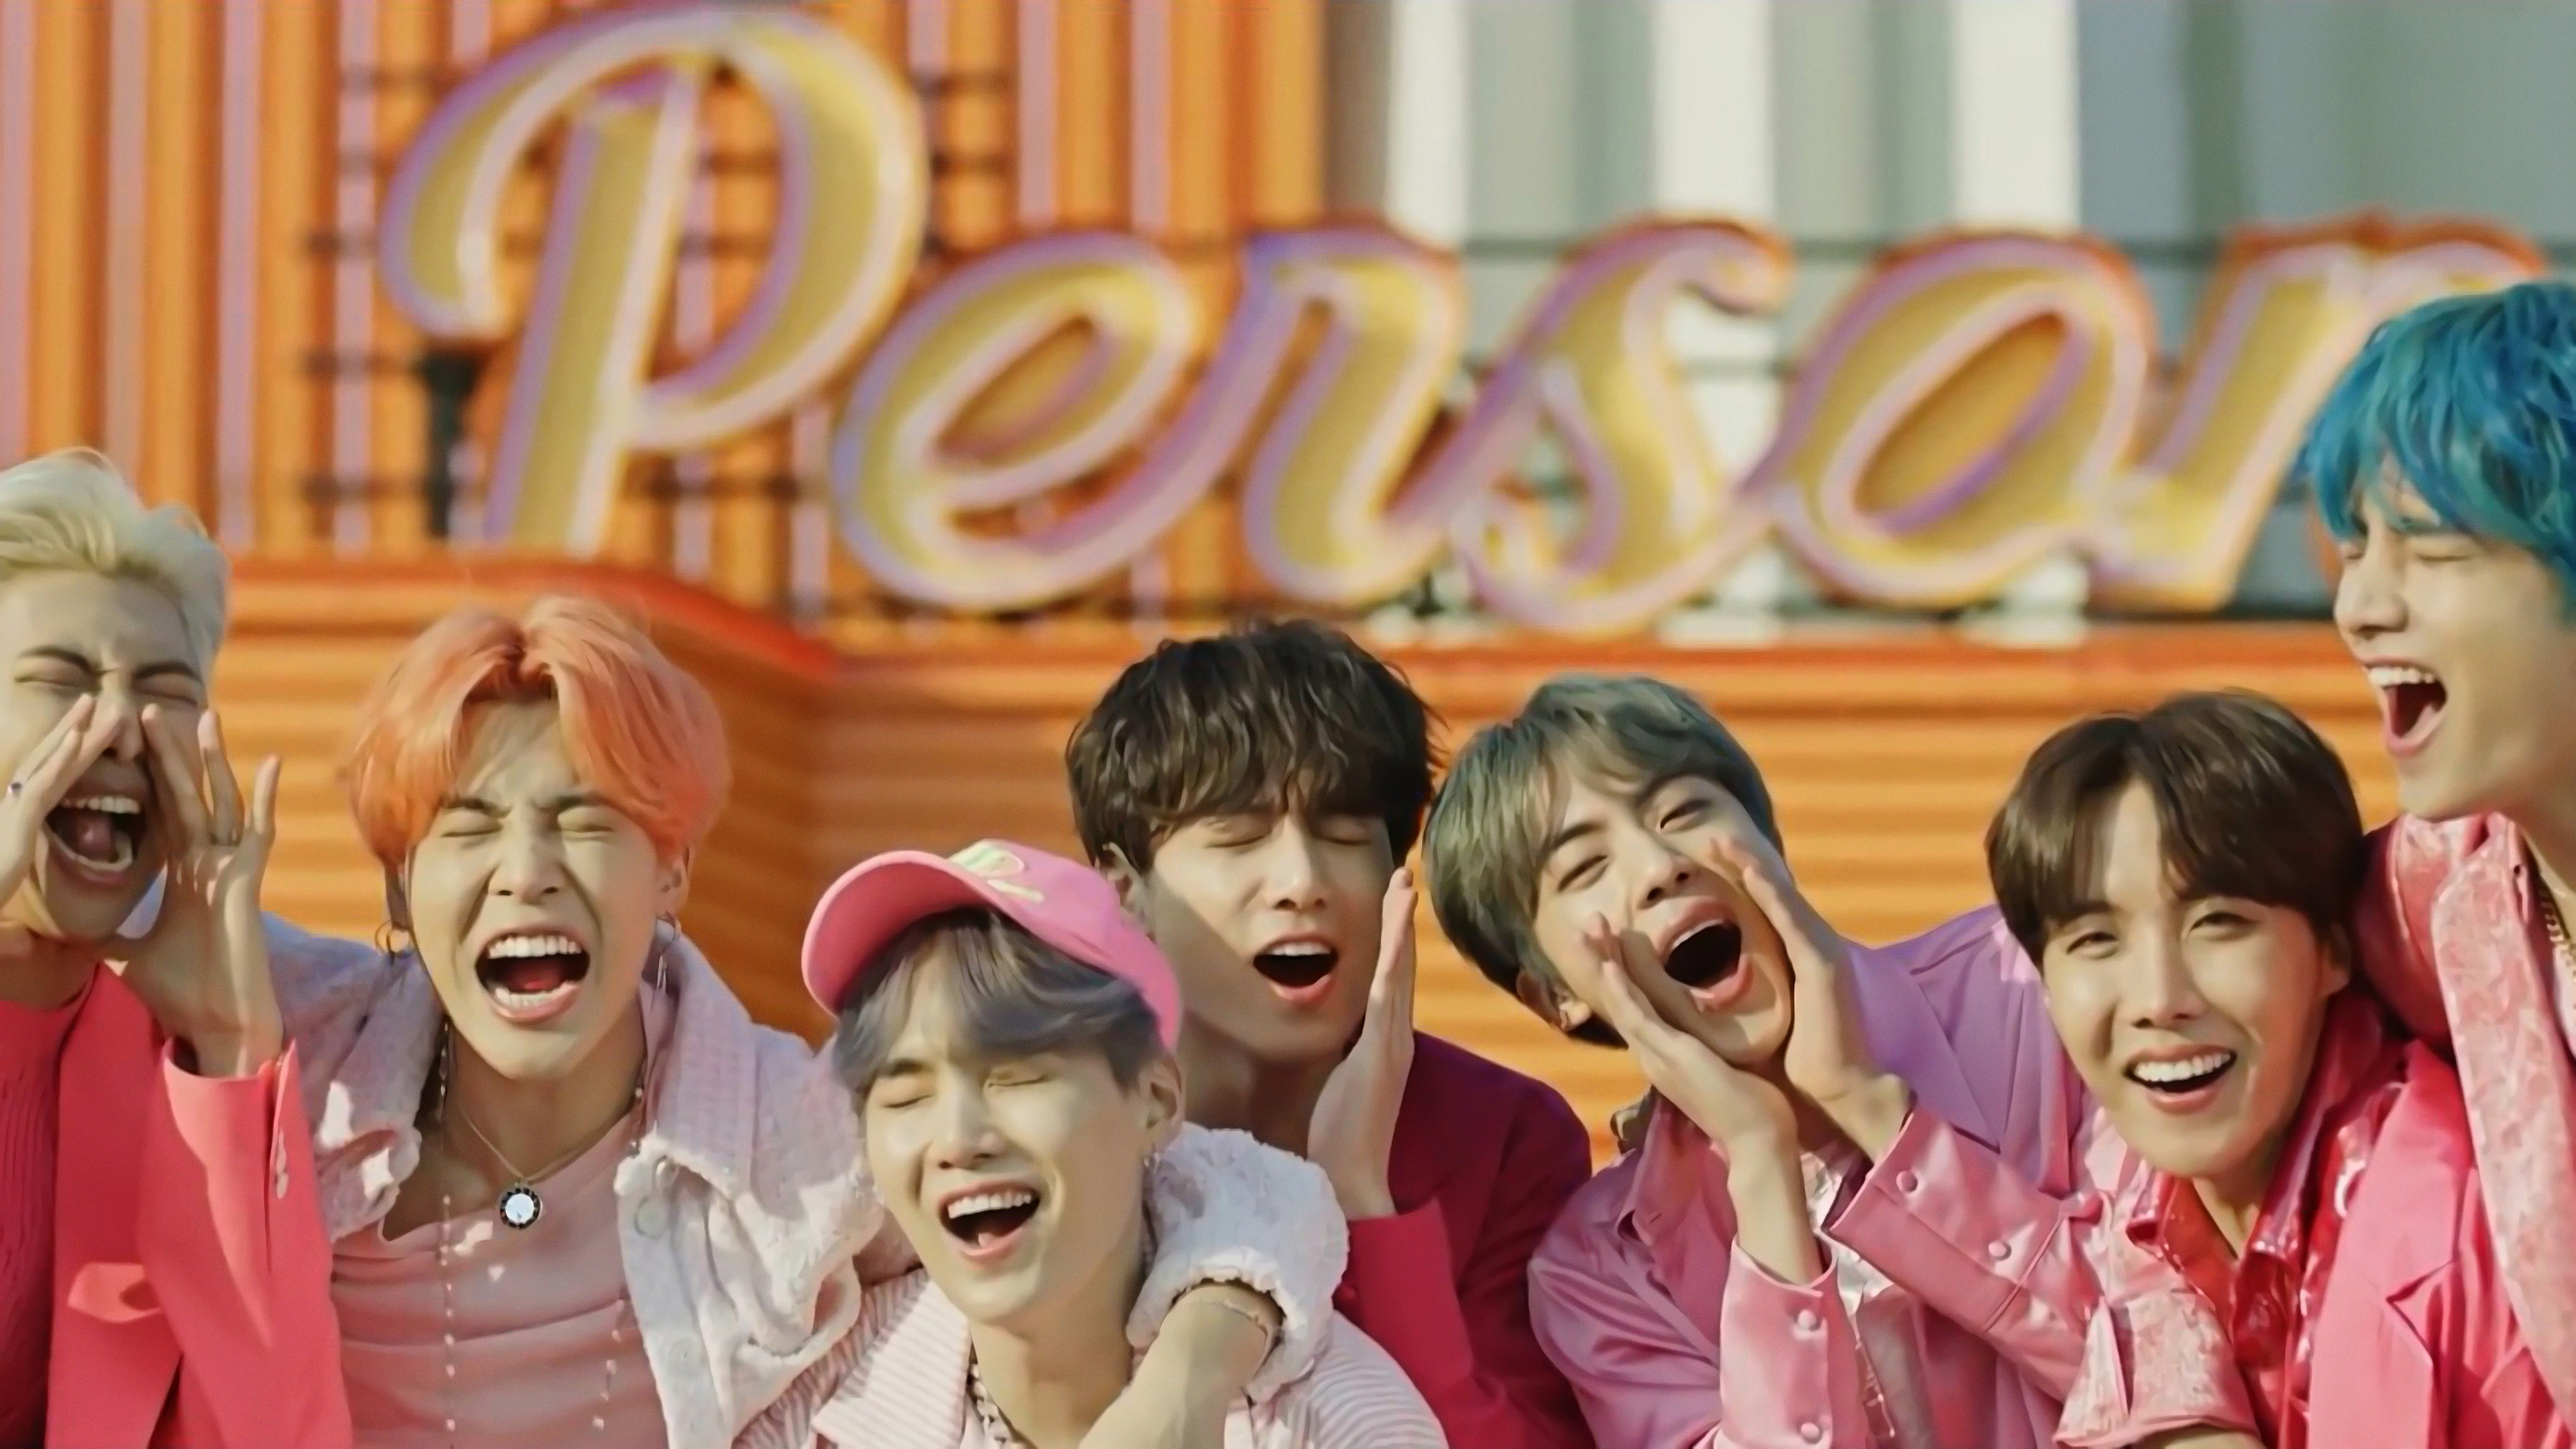 BTS Boy With Luv All Members 4K Wallpaper 10